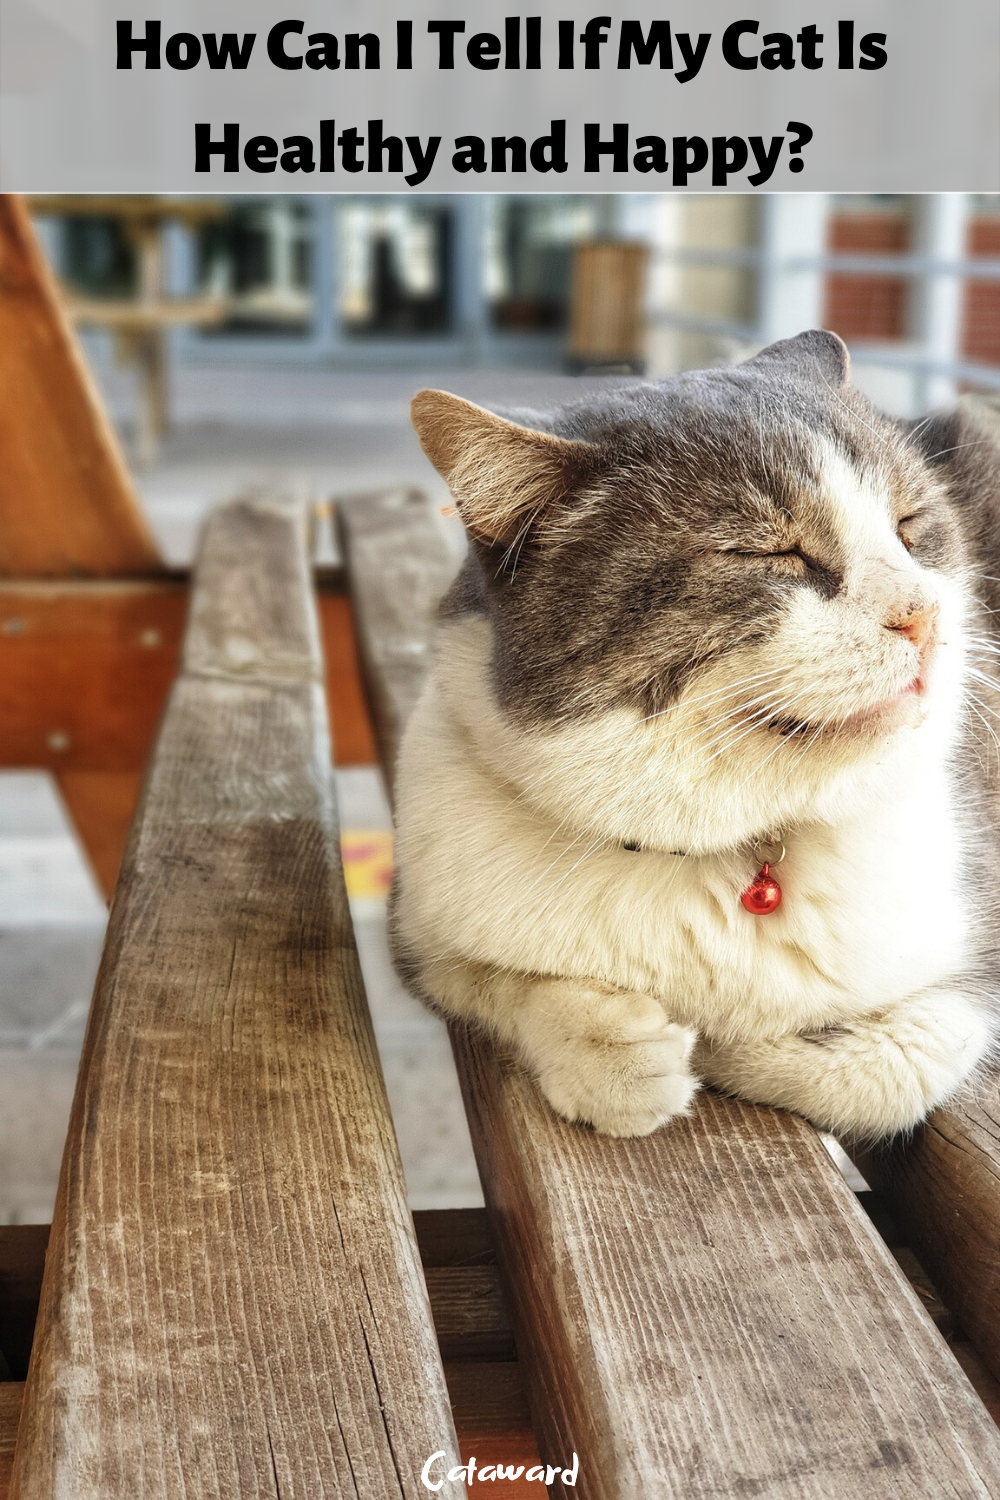 How can I tell if my cat is healthy and happy? Read